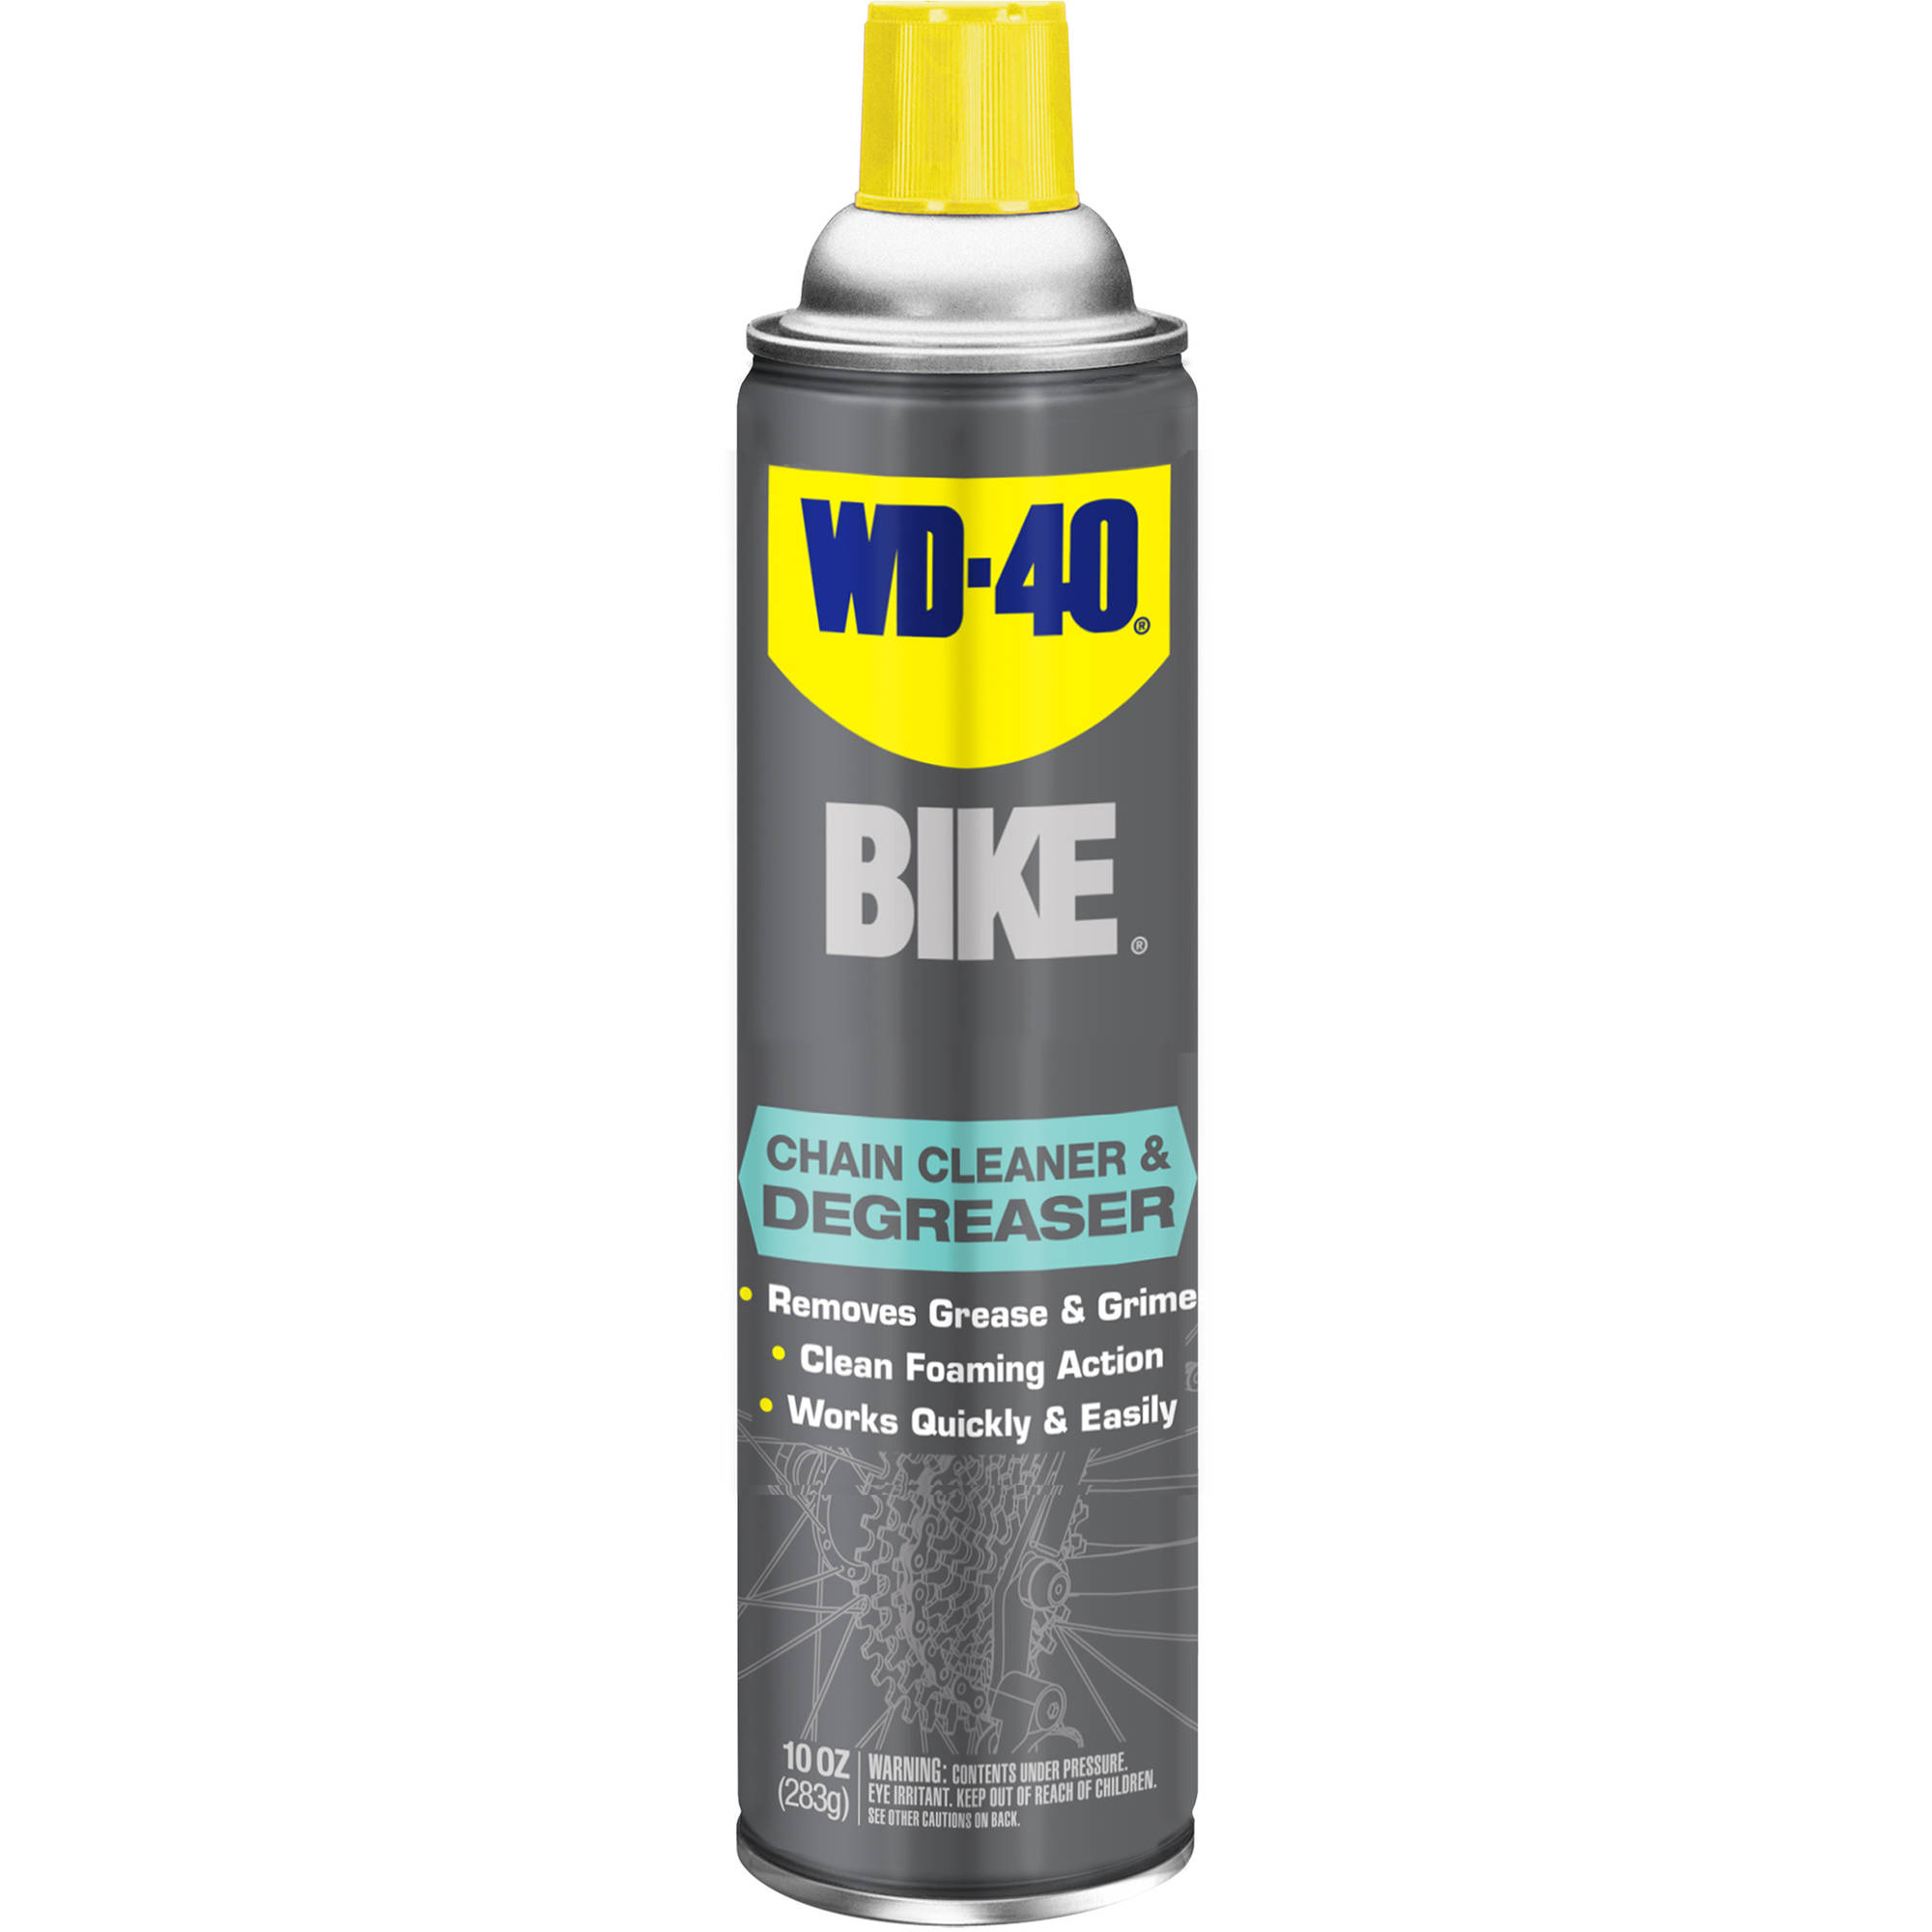 WD-40 Bike Cleaner and Degreaser, 10 oz